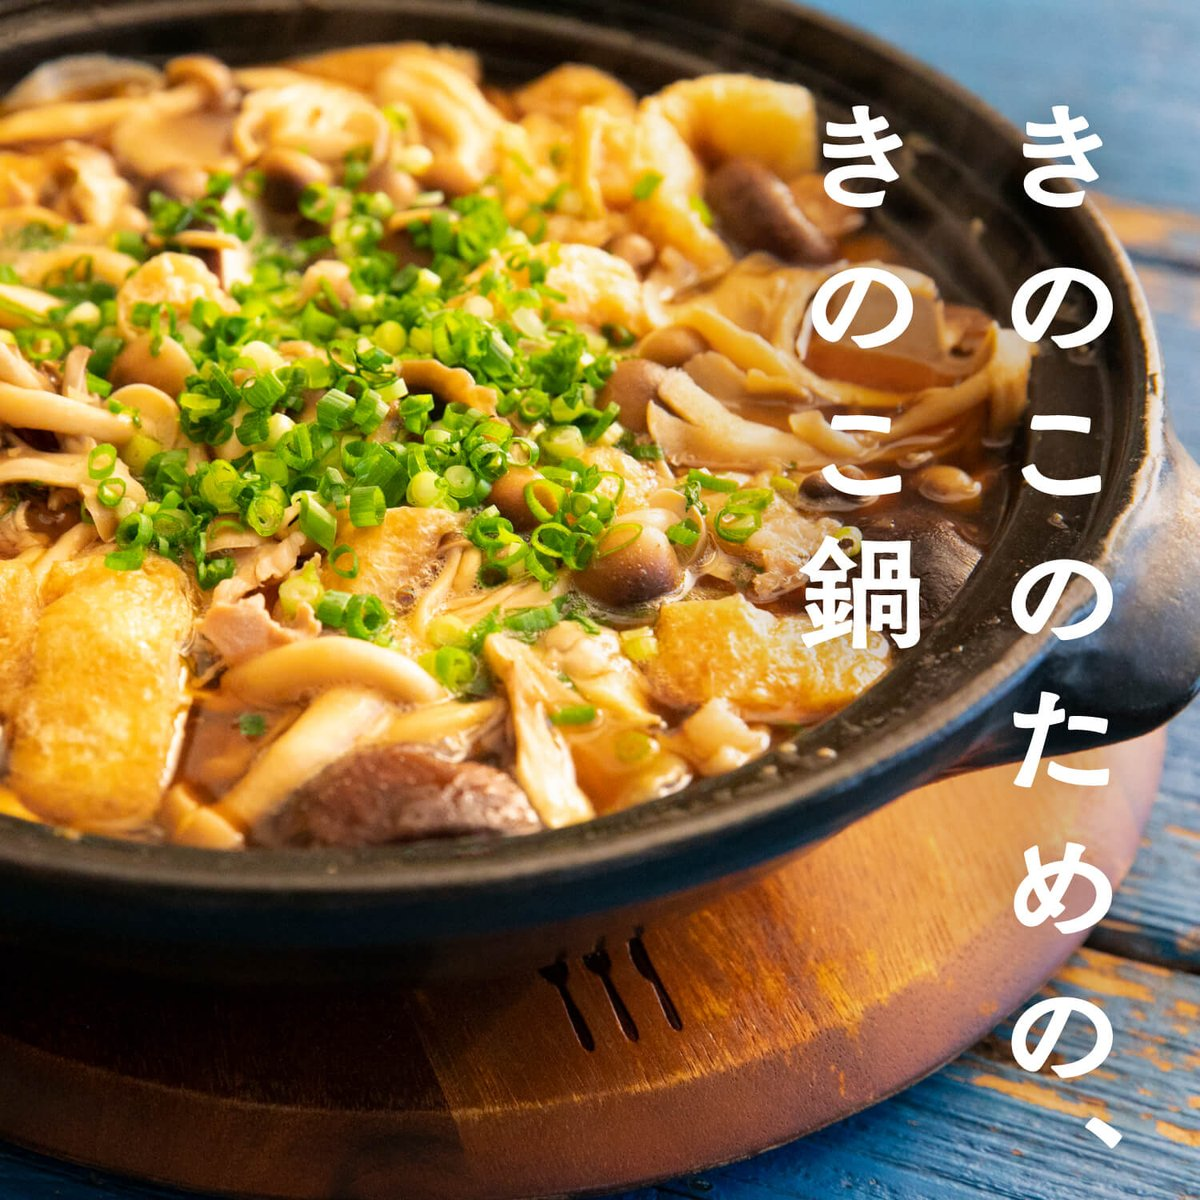 Shimpei's Japanese RecipeTwitter投稿サムネイル画像